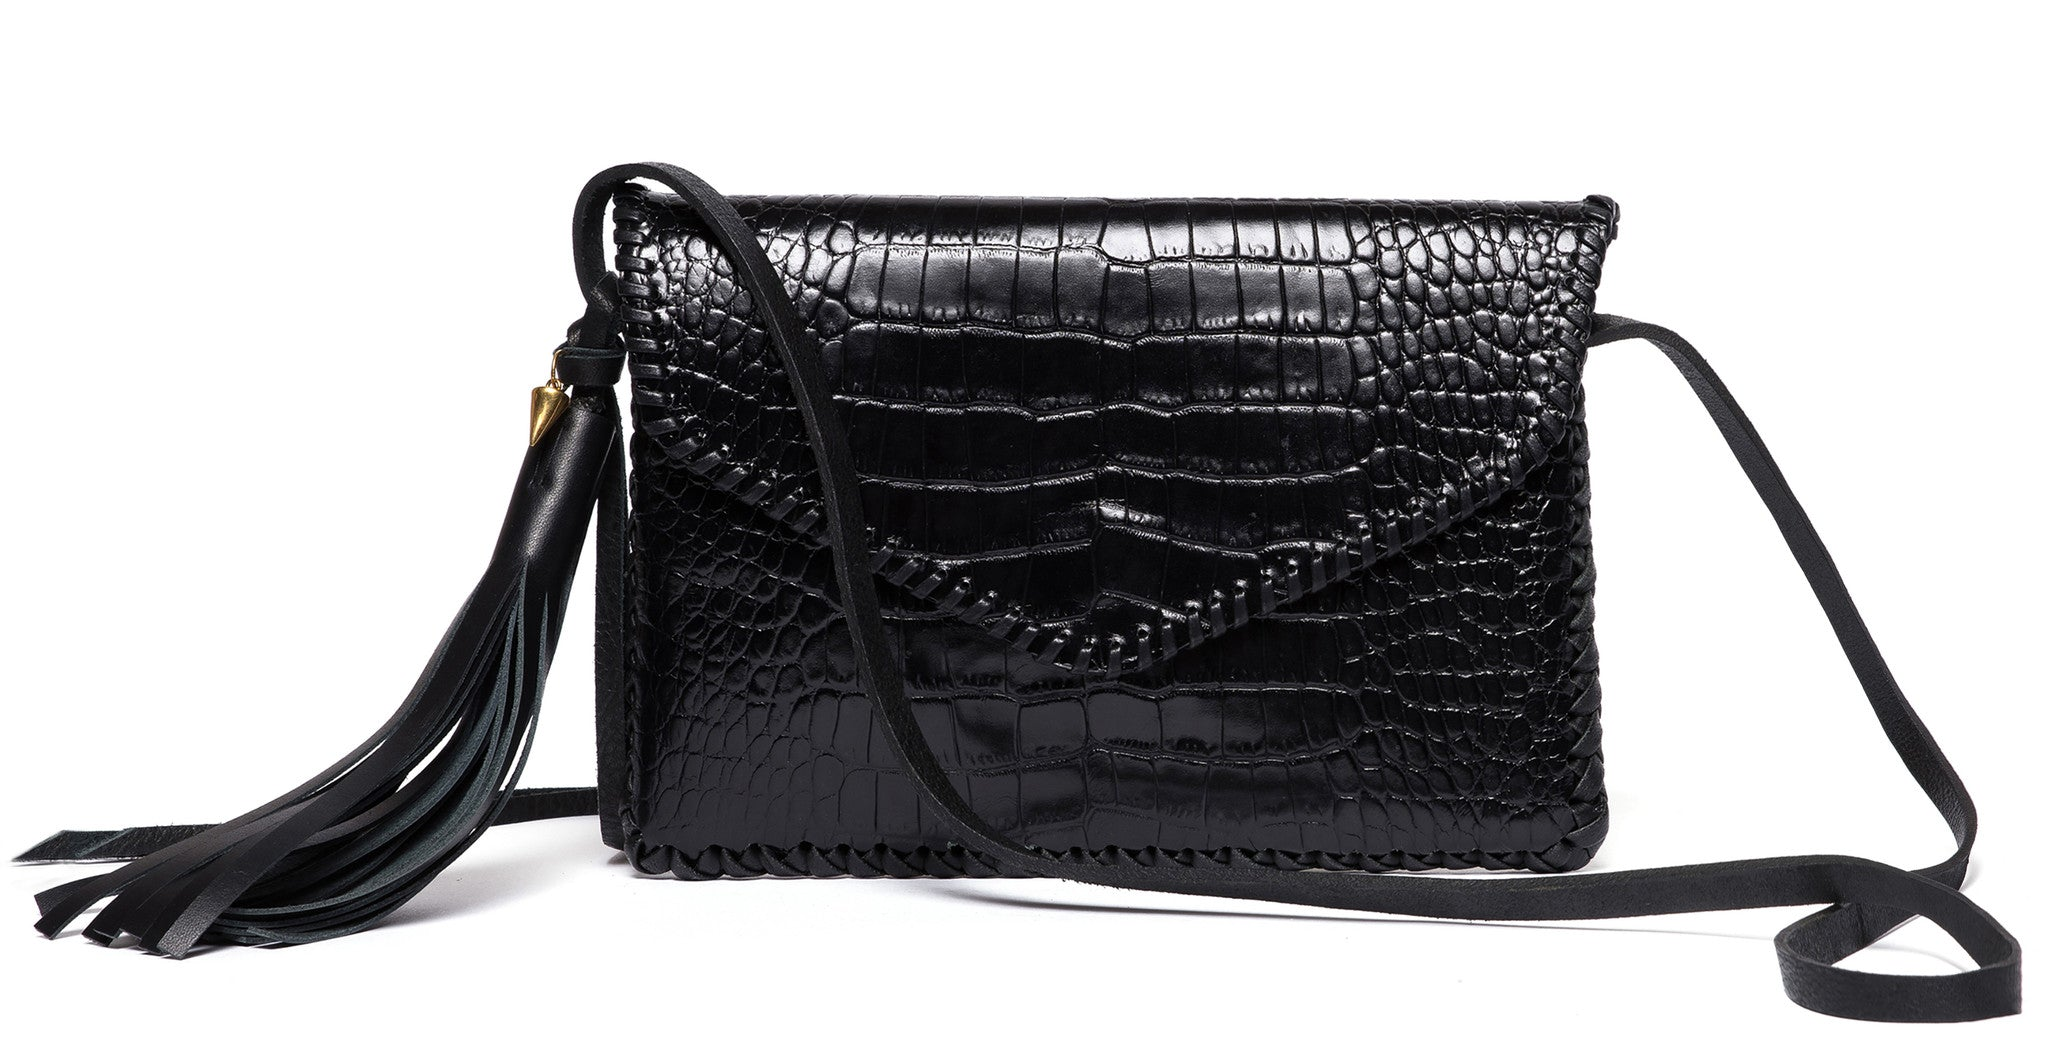 Black Shiny Reflective Embossed Croc Crocodile Alligator Cowhide Leather Whipstitch Edge Envelope Flap Closure Middle Earth Bag Wendy Nichol Luxury Handbag Purse Designer Handmade in NYC New York City outside pocket magnet magnetic closure Cross body strap Fringe Tassel Evening Clutch